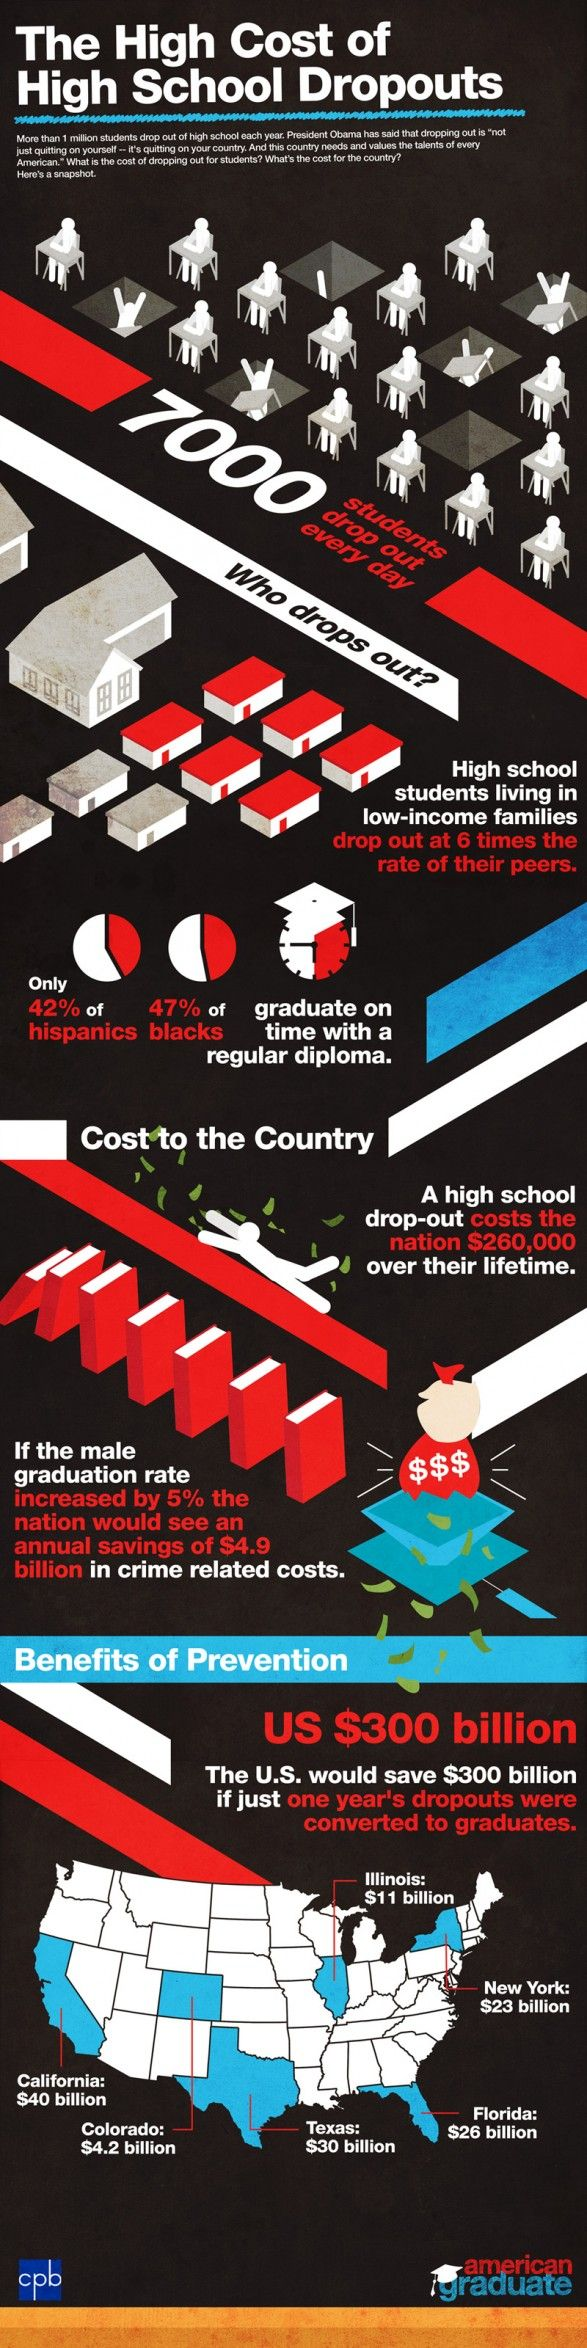 The cost of dropouts